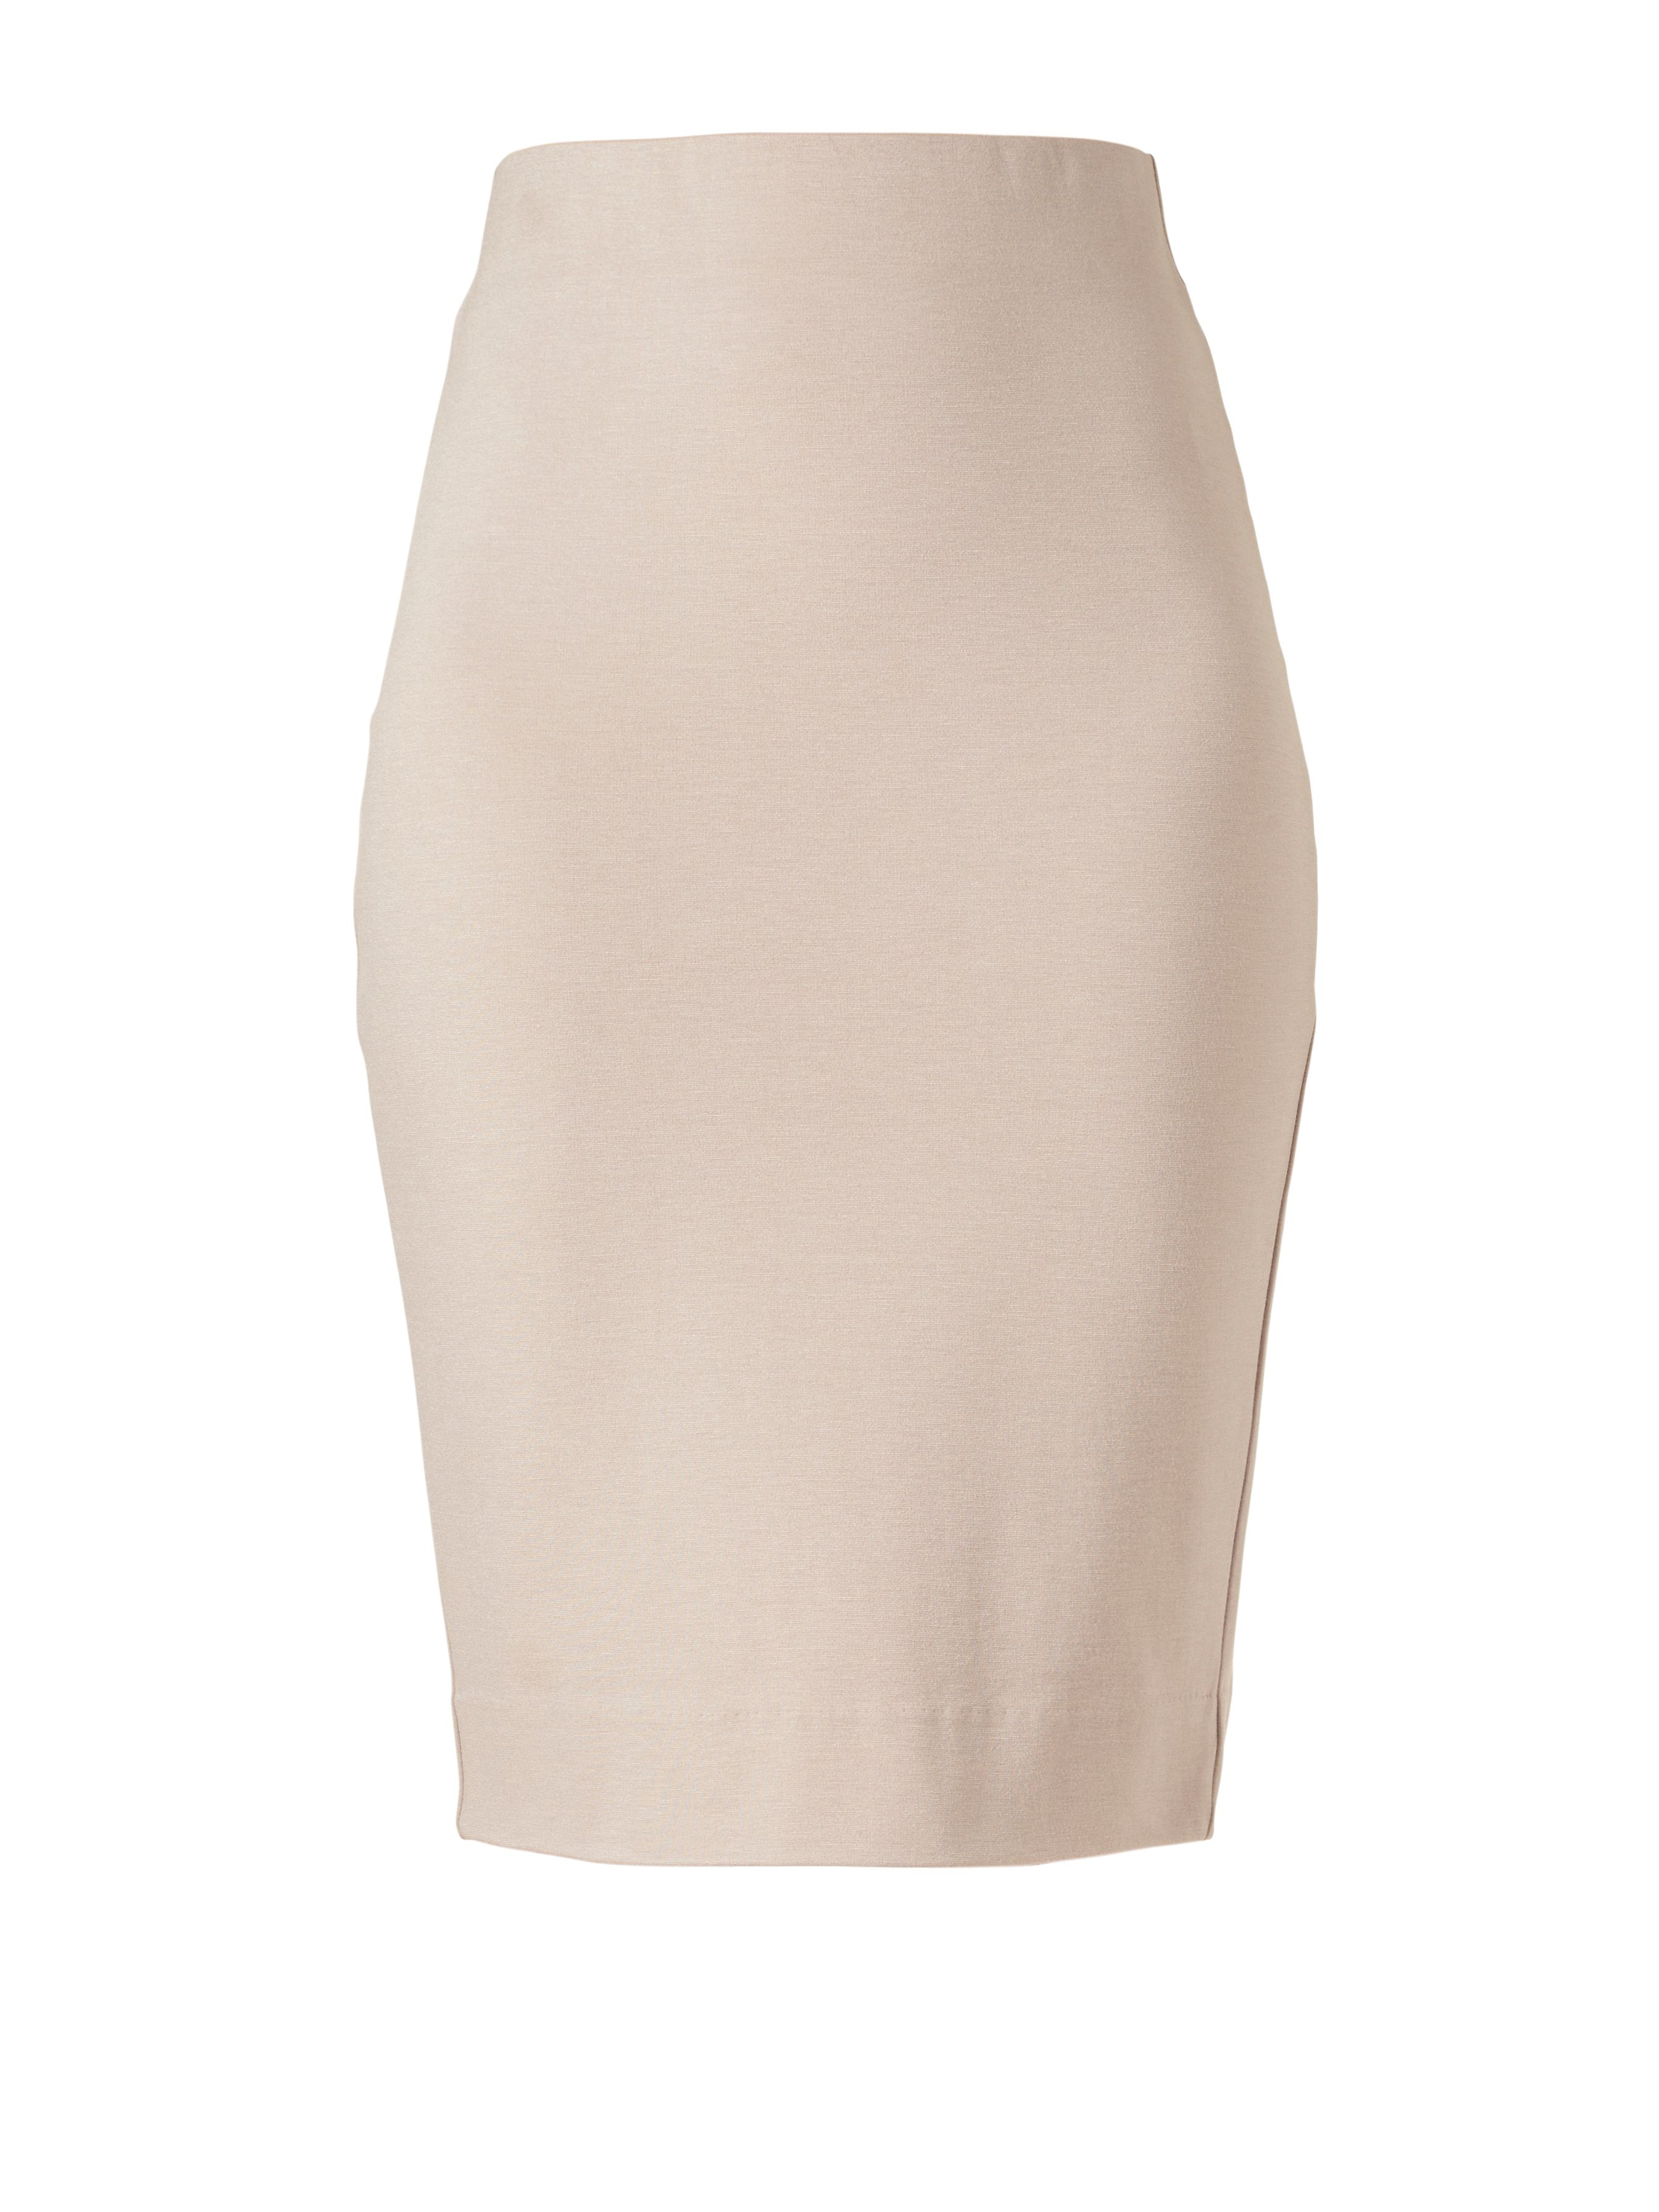 Winser London Miracle Pencil Skirt, White